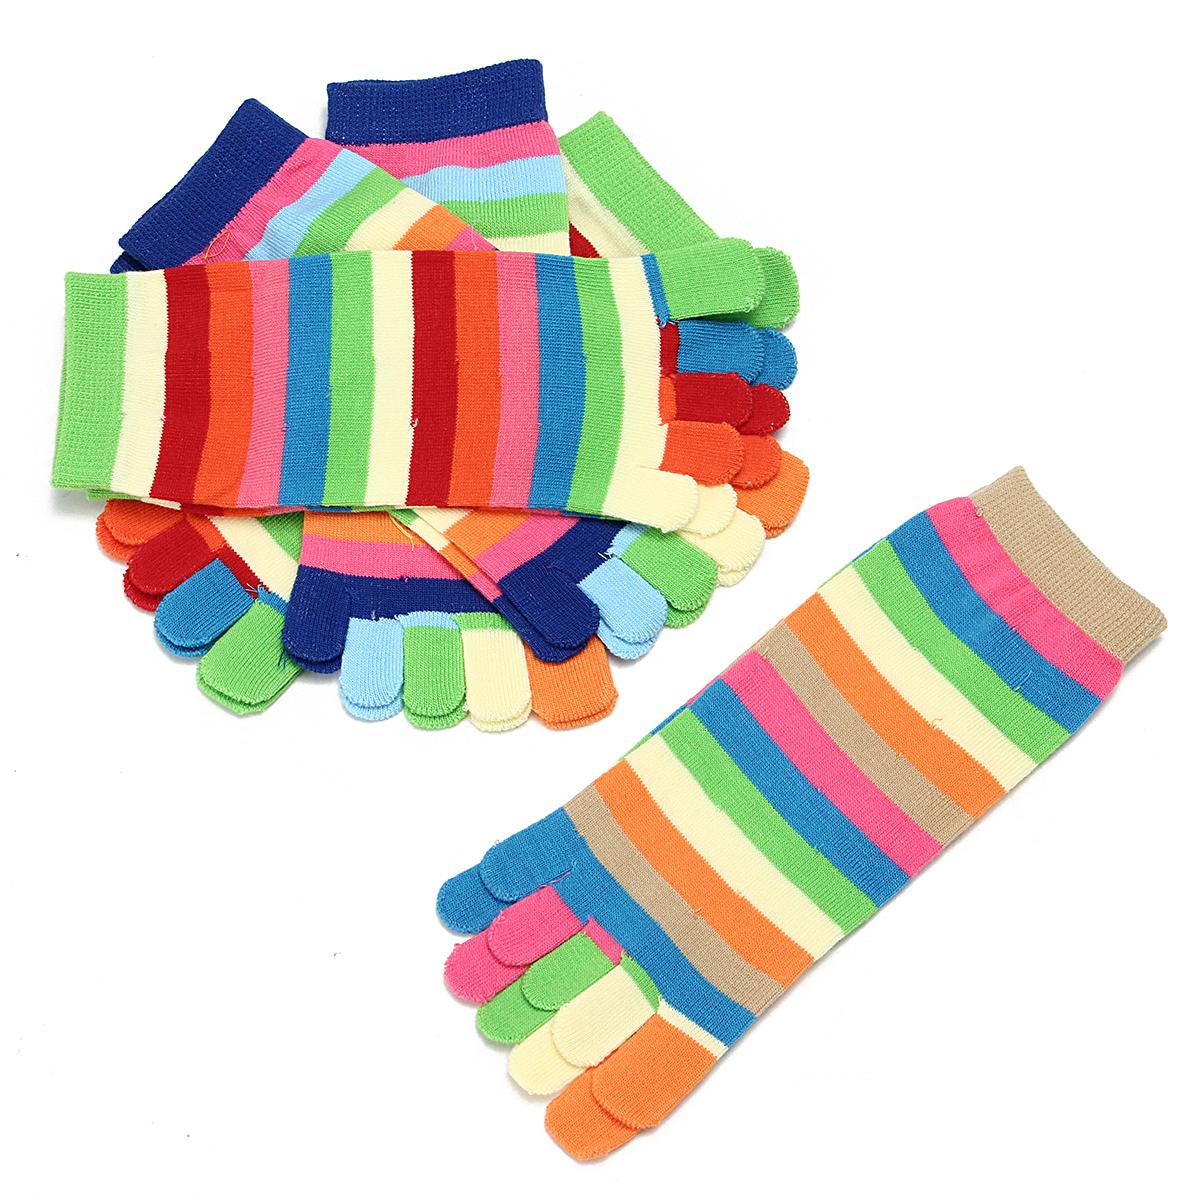 New 5 Pairs Lot Colorful Women Girl Color Stripes Five Finger Toe Socks Hosiery